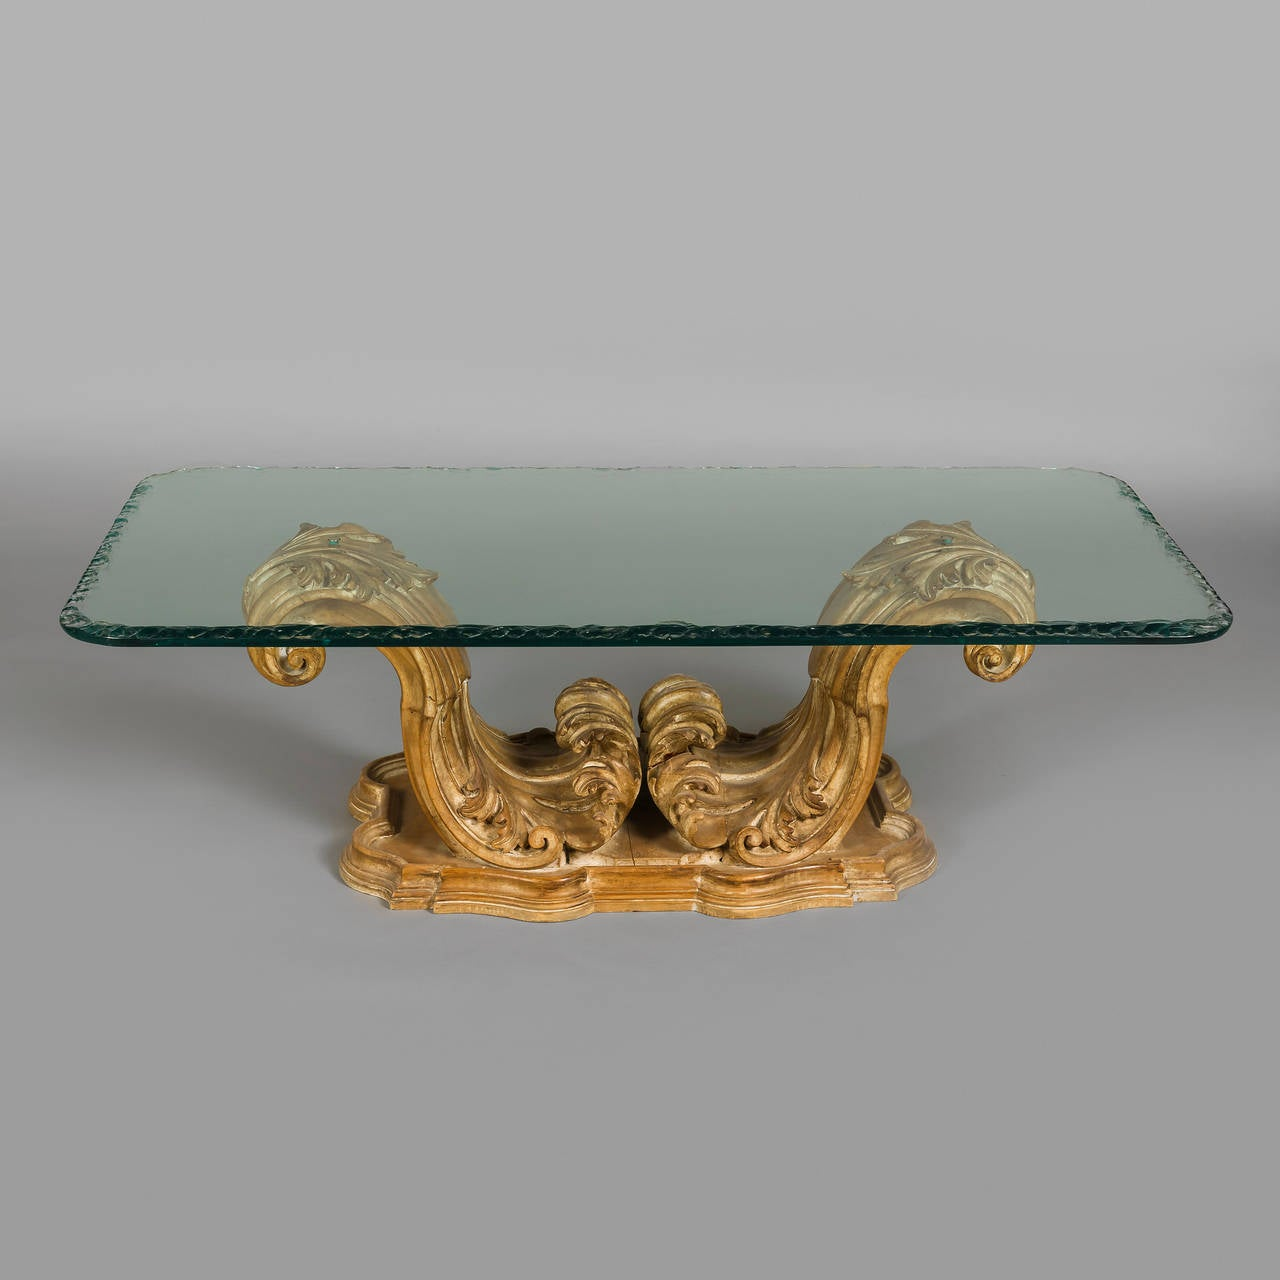 Carved Coffee Table Glass Top Chinese: 1940s Italian Ornately Carved Wood Coffee Table With Glass